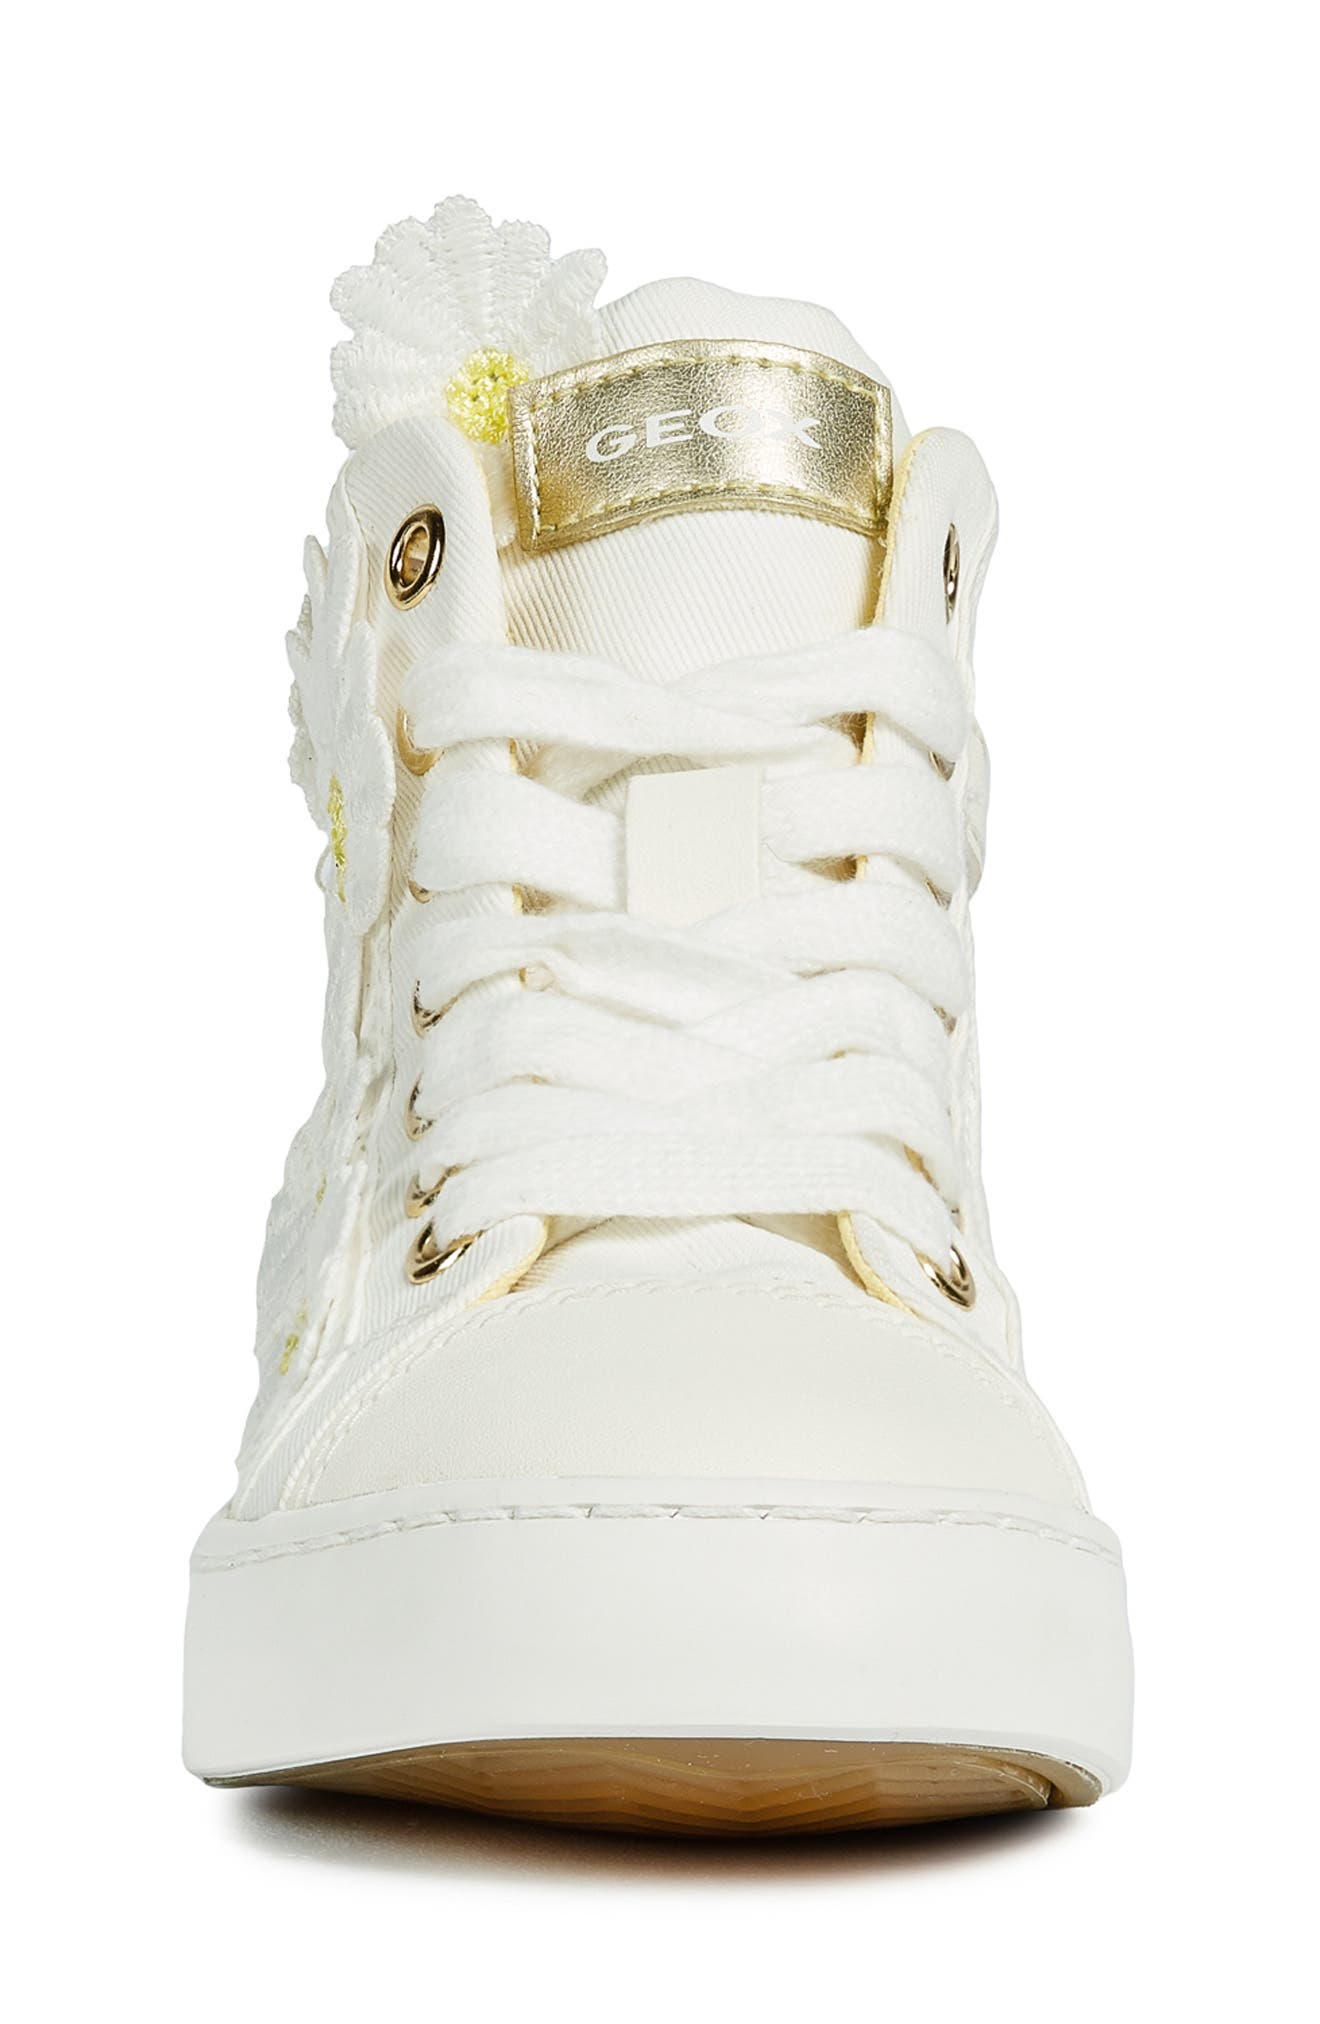 GEOX, Ciak Daisy Appliqué High Top Sneaker, Alternate thumbnail 4, color, WHITE